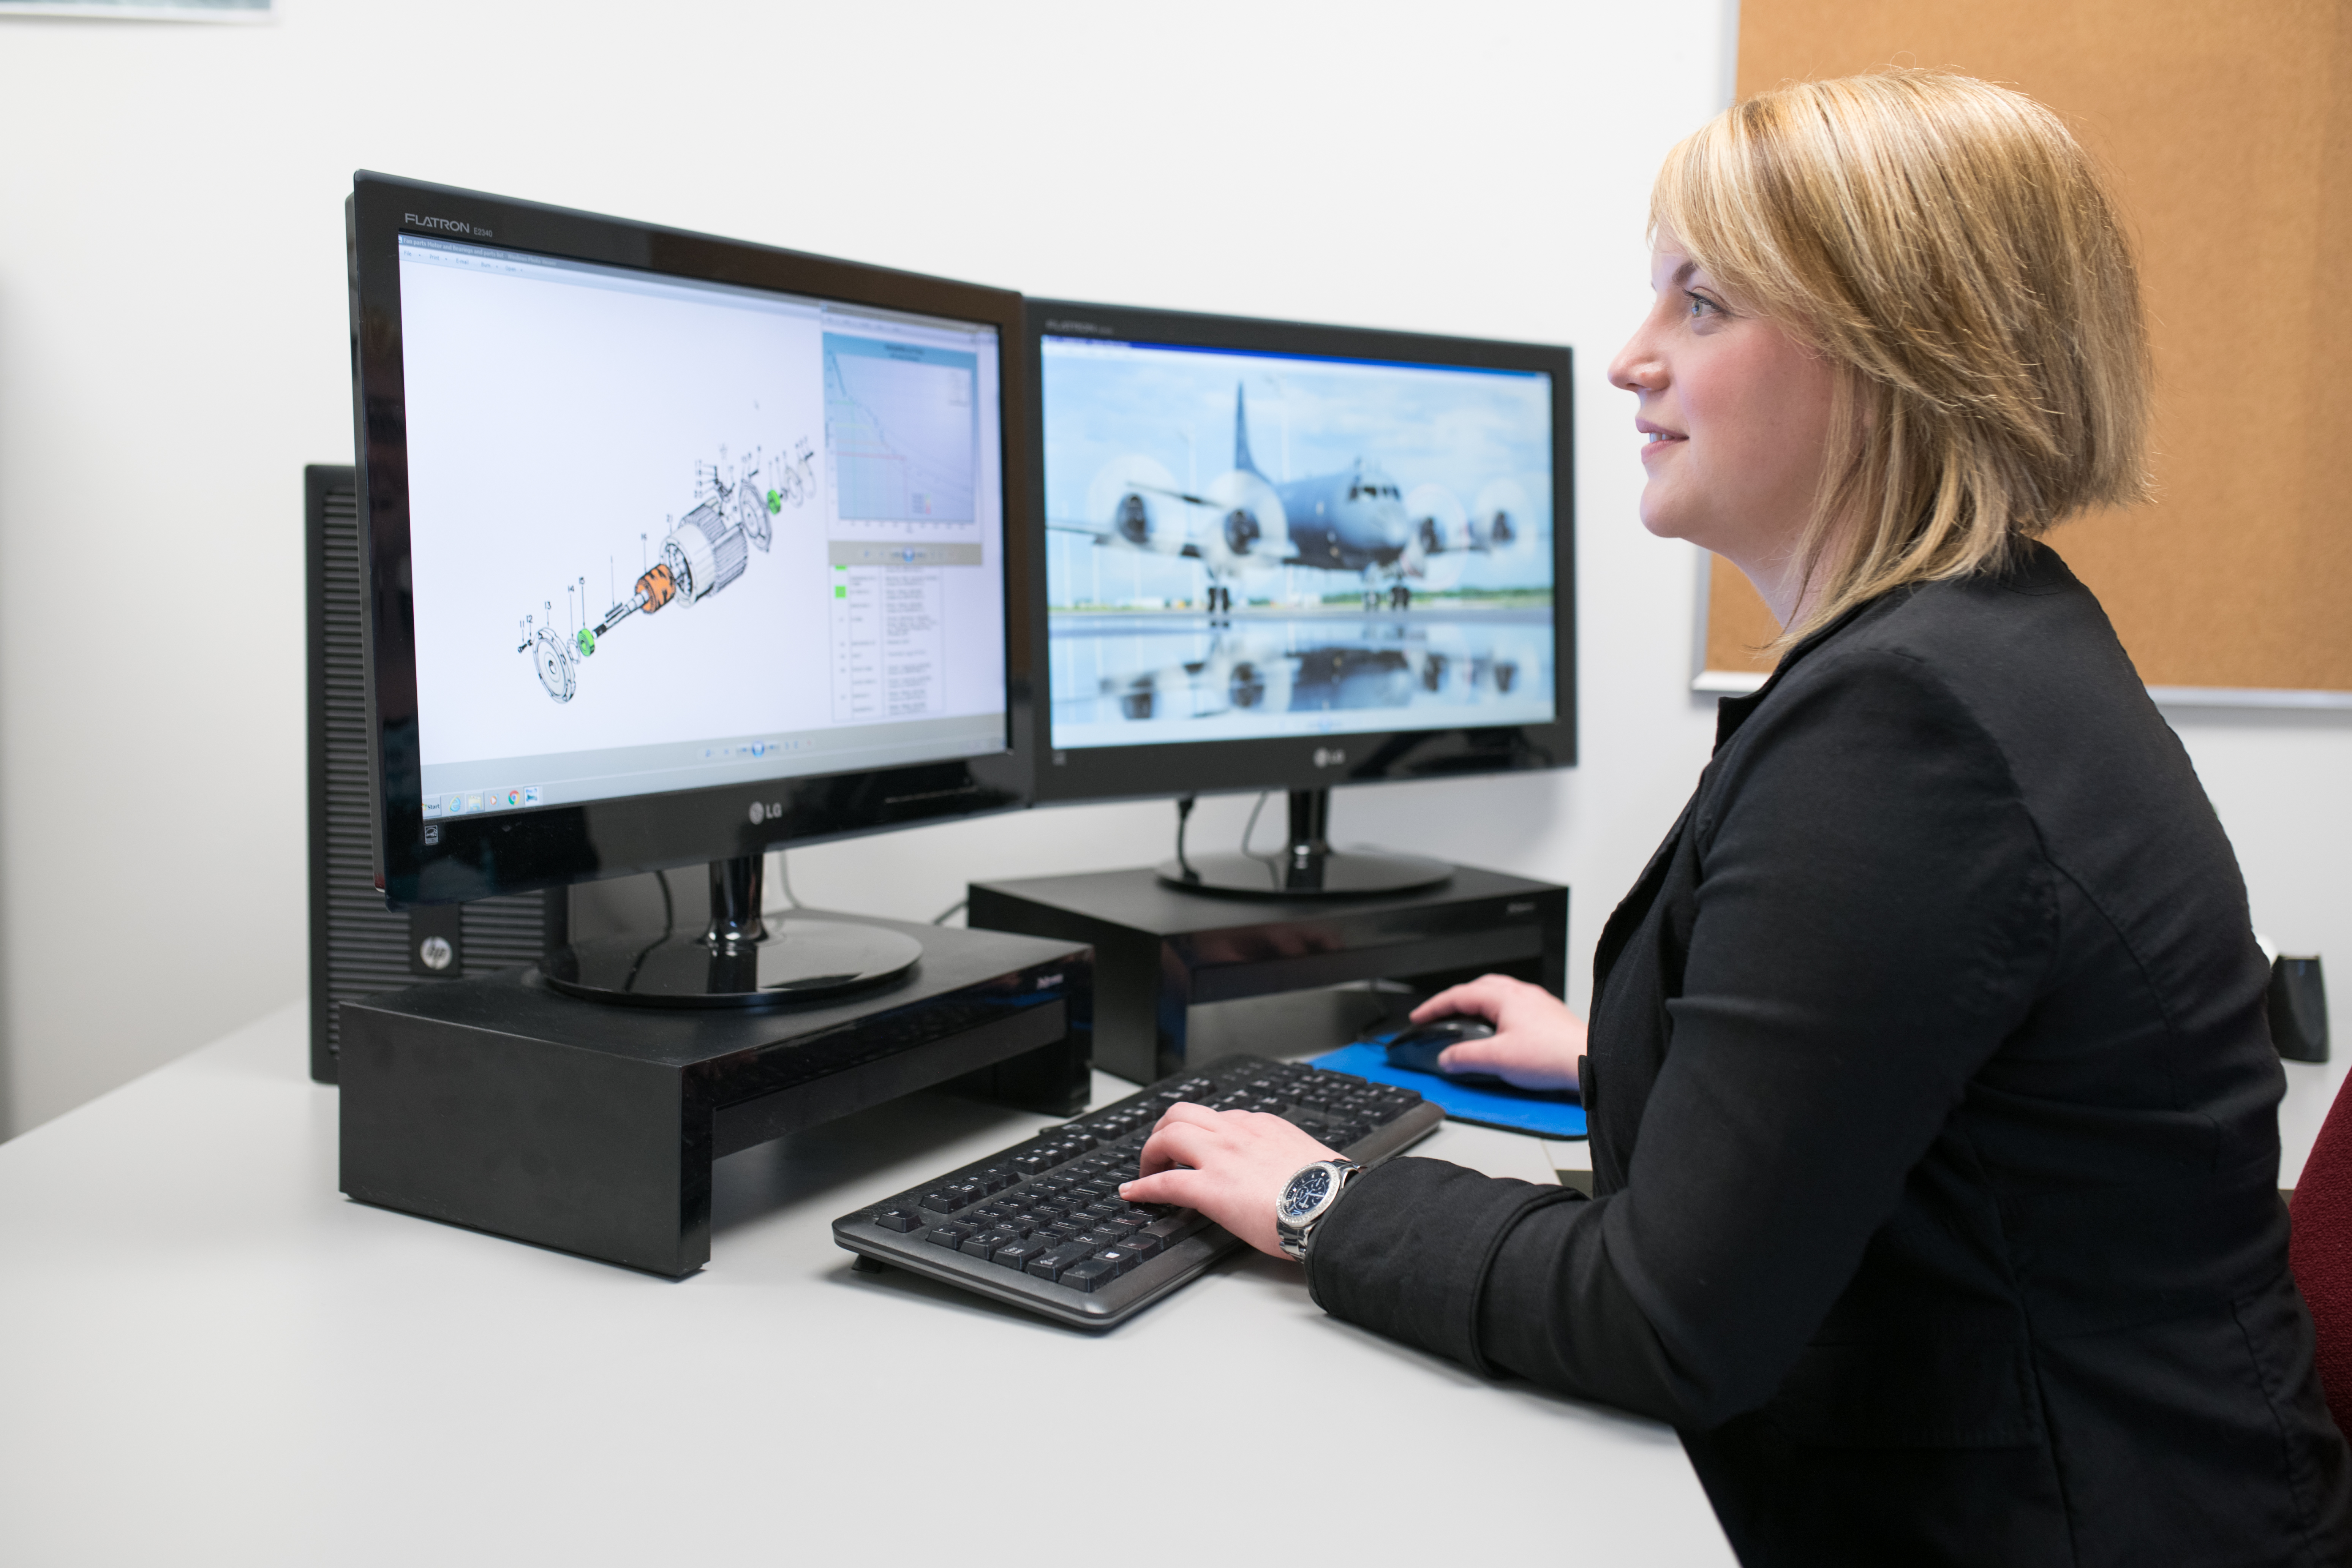 Engineer working on renderings of an aircraft component